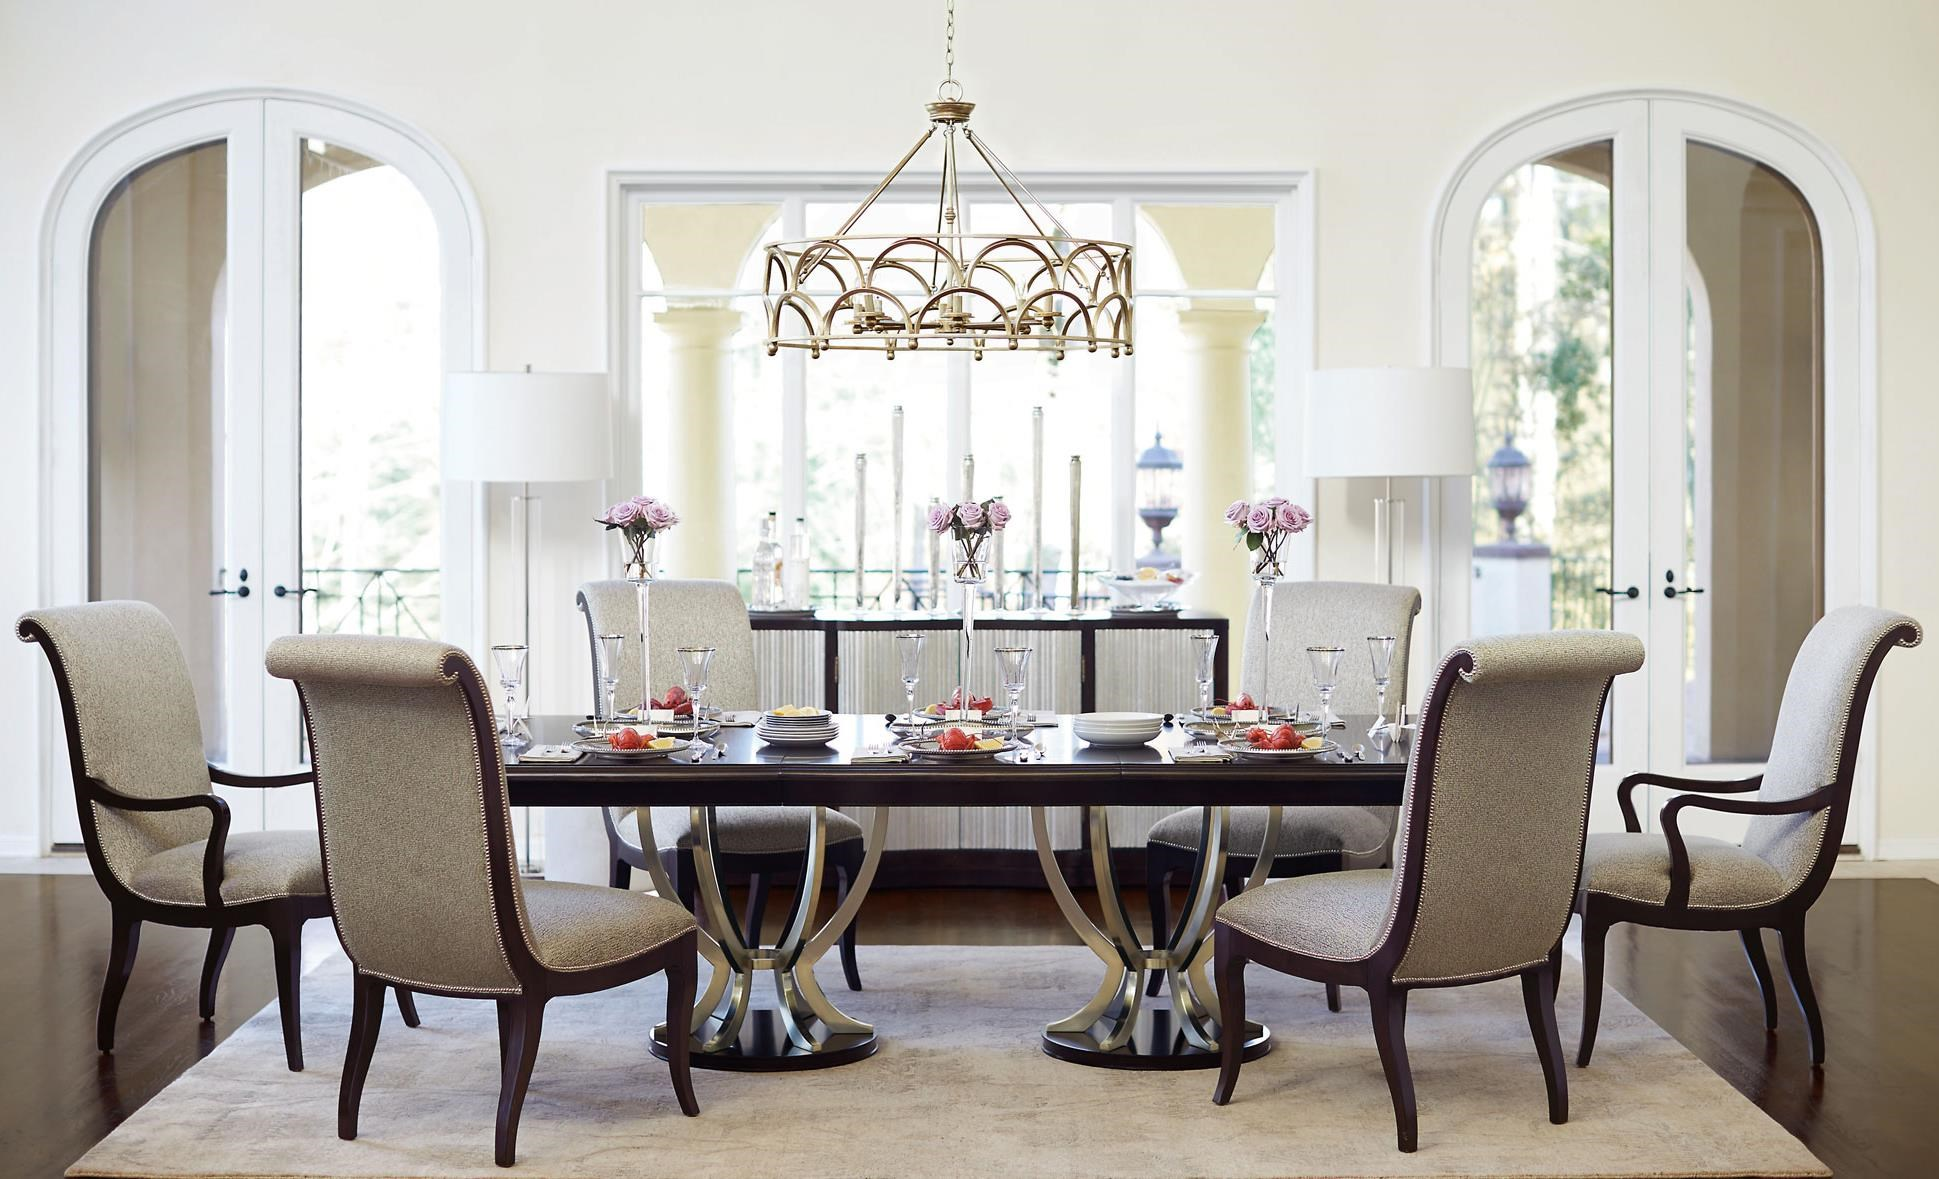 Bernhardt Miramont7 Piece Dining Table And Chair Set ...